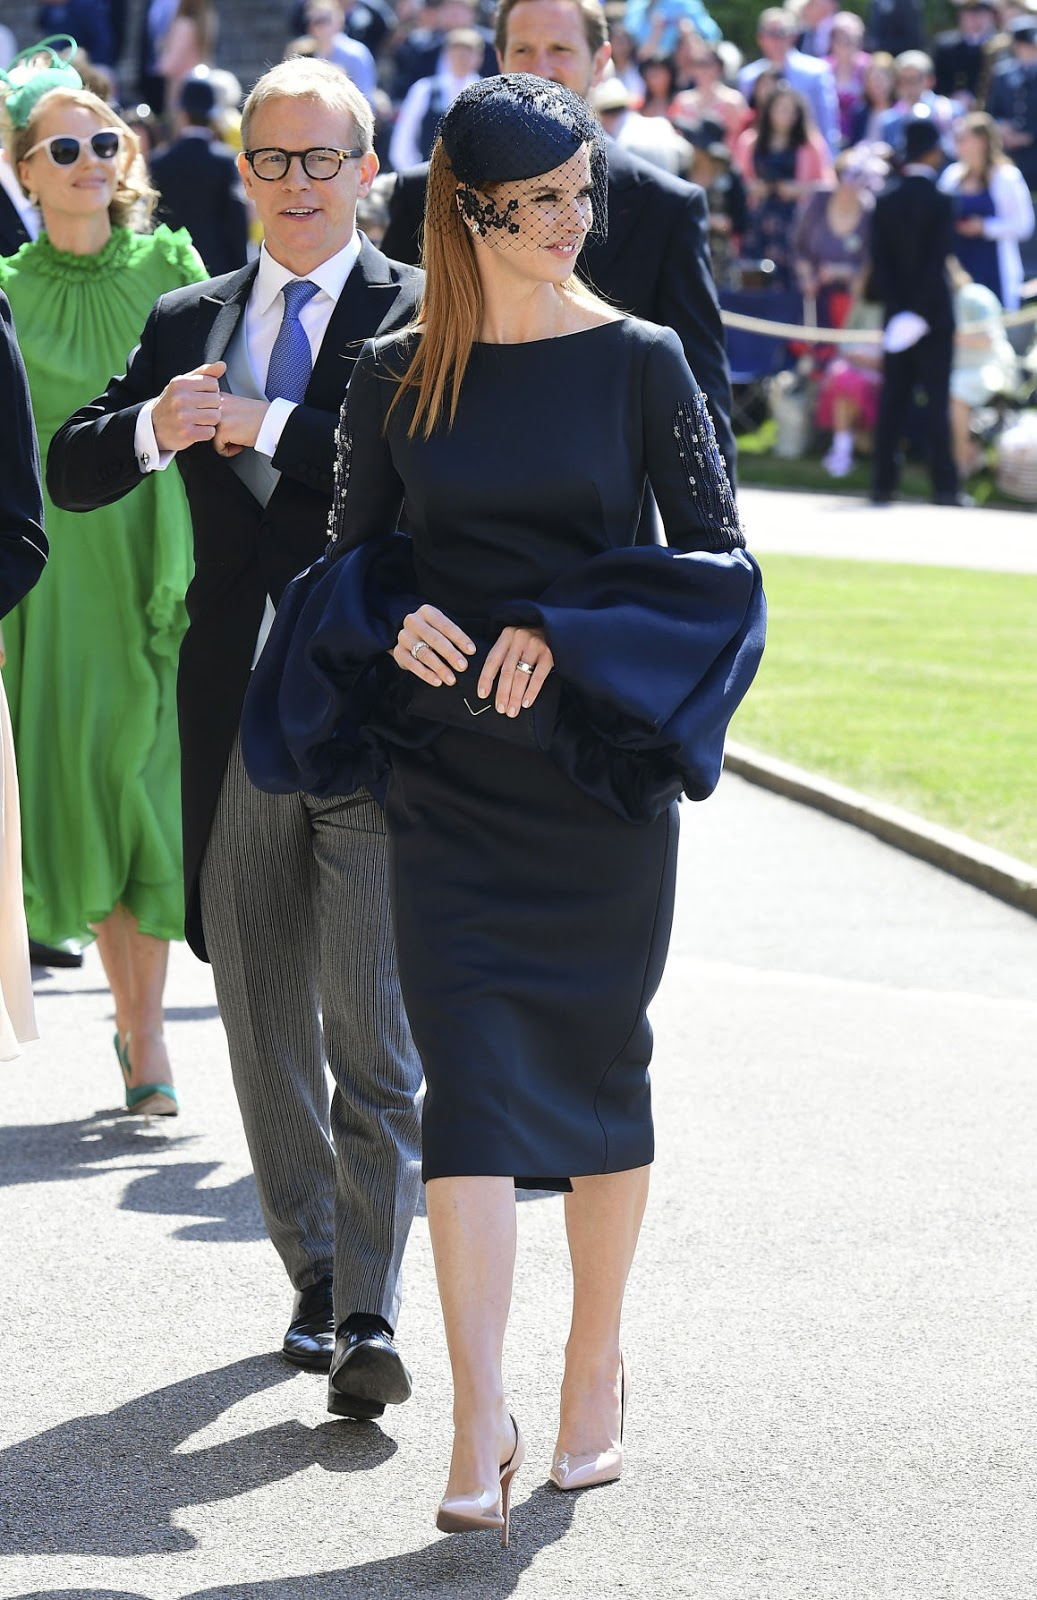 Sarah Rafferty arrives for the wedding ceremony of Prince Harry and Meghan Markle at St. George's Chapel in Windsor Castle in Windsor, near London, England, Saturday, May 19, 2018.